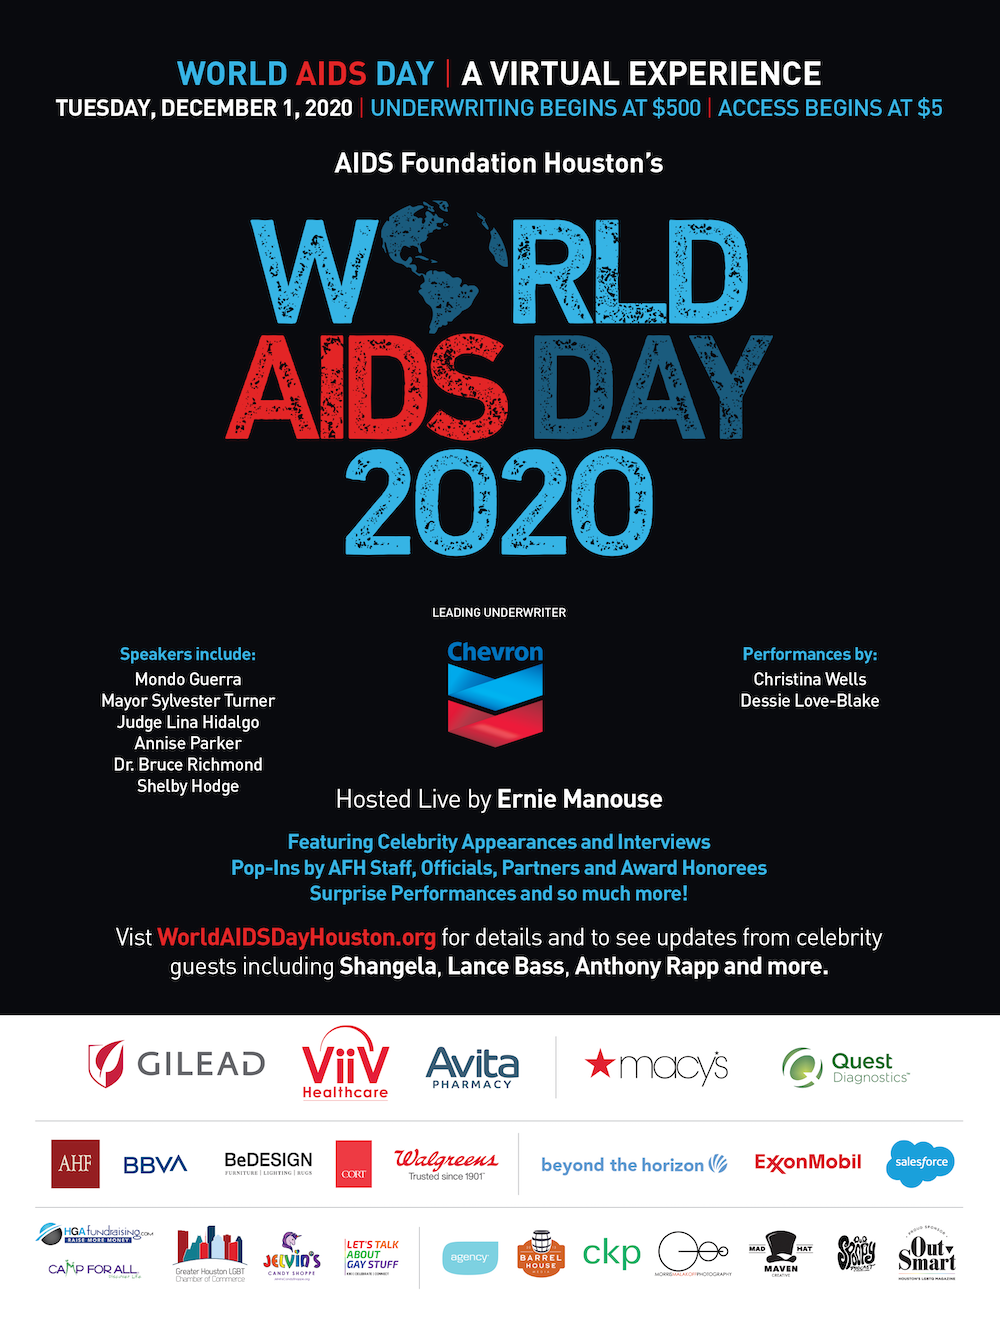 A flier for the World AIDS Day 2020 virtual event